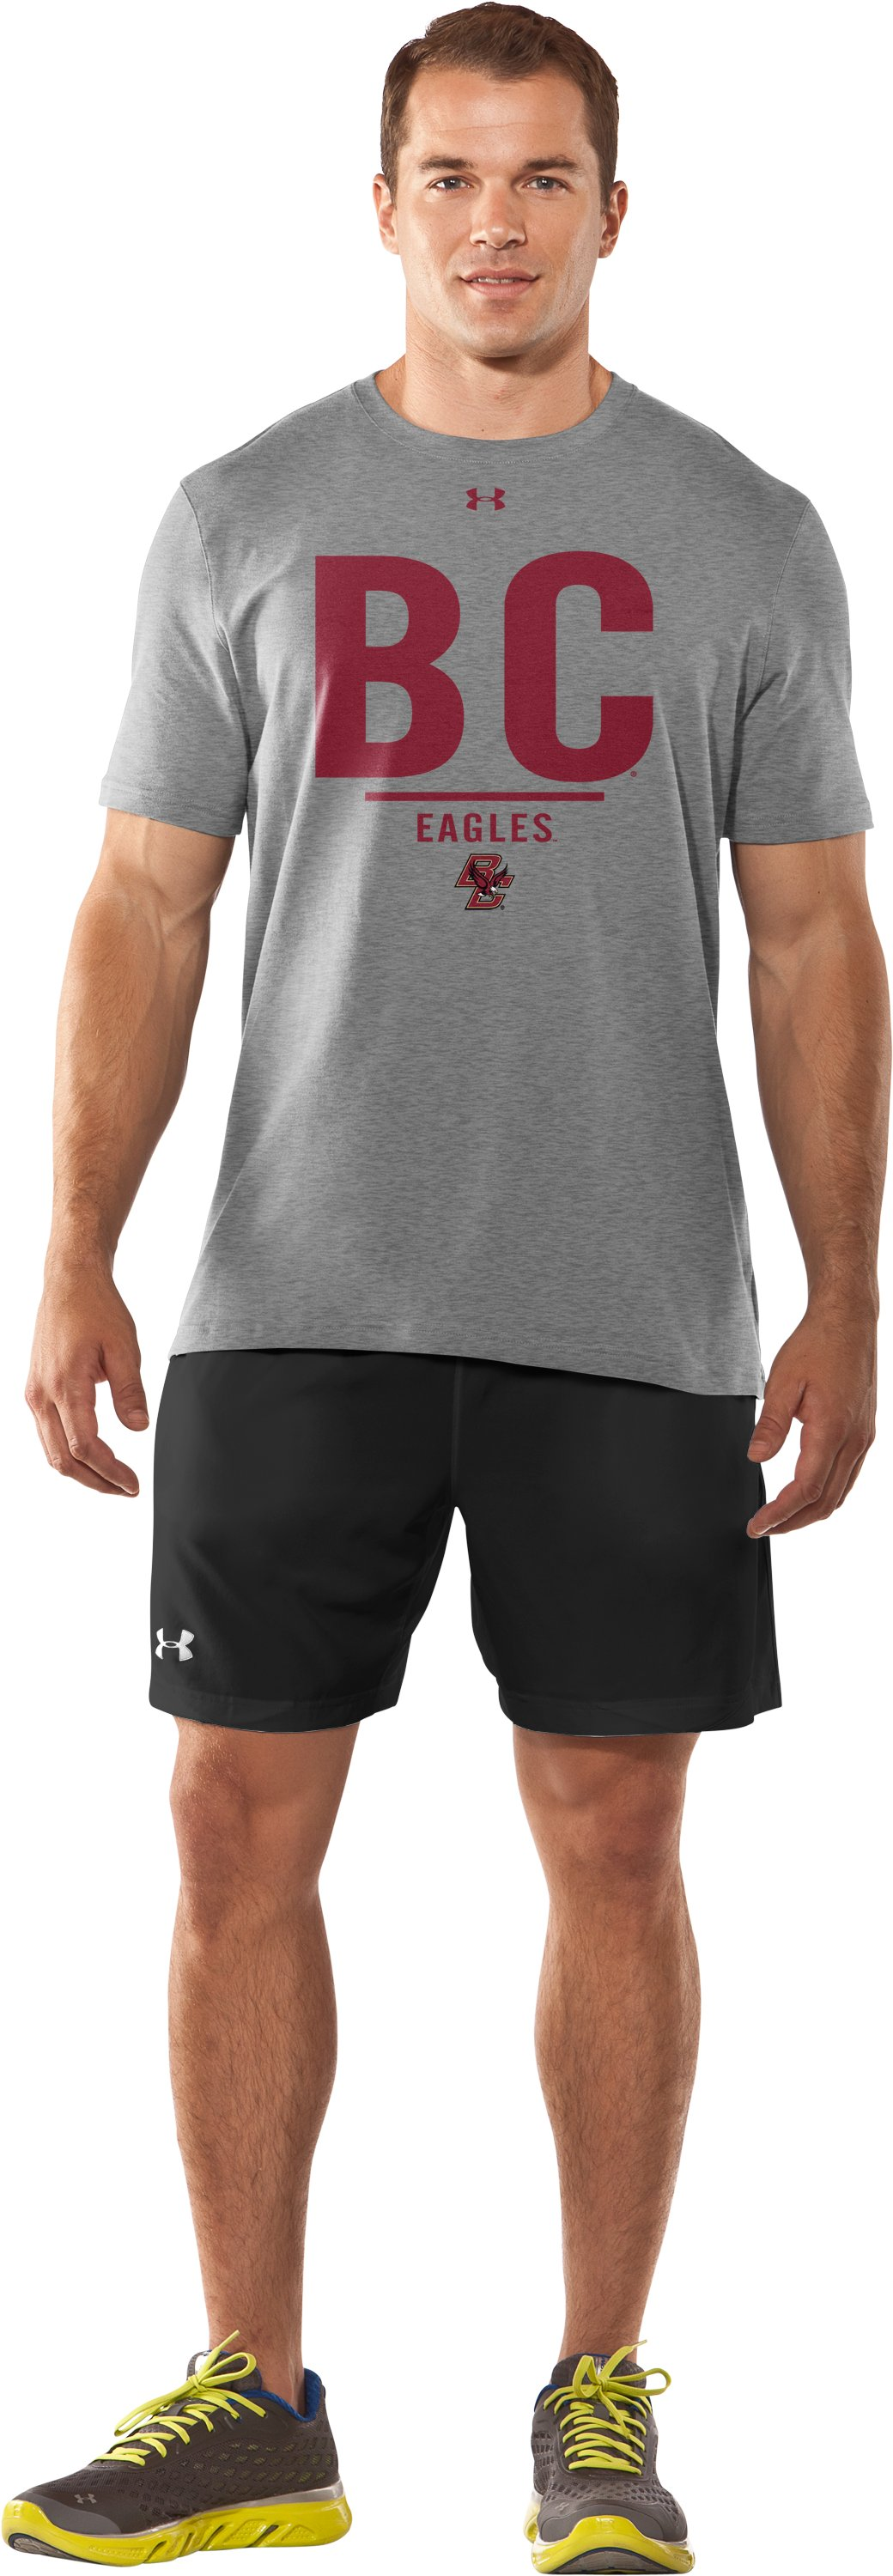 Men's Boston College Charged Cotton® T-Shirt, True Gray Heather